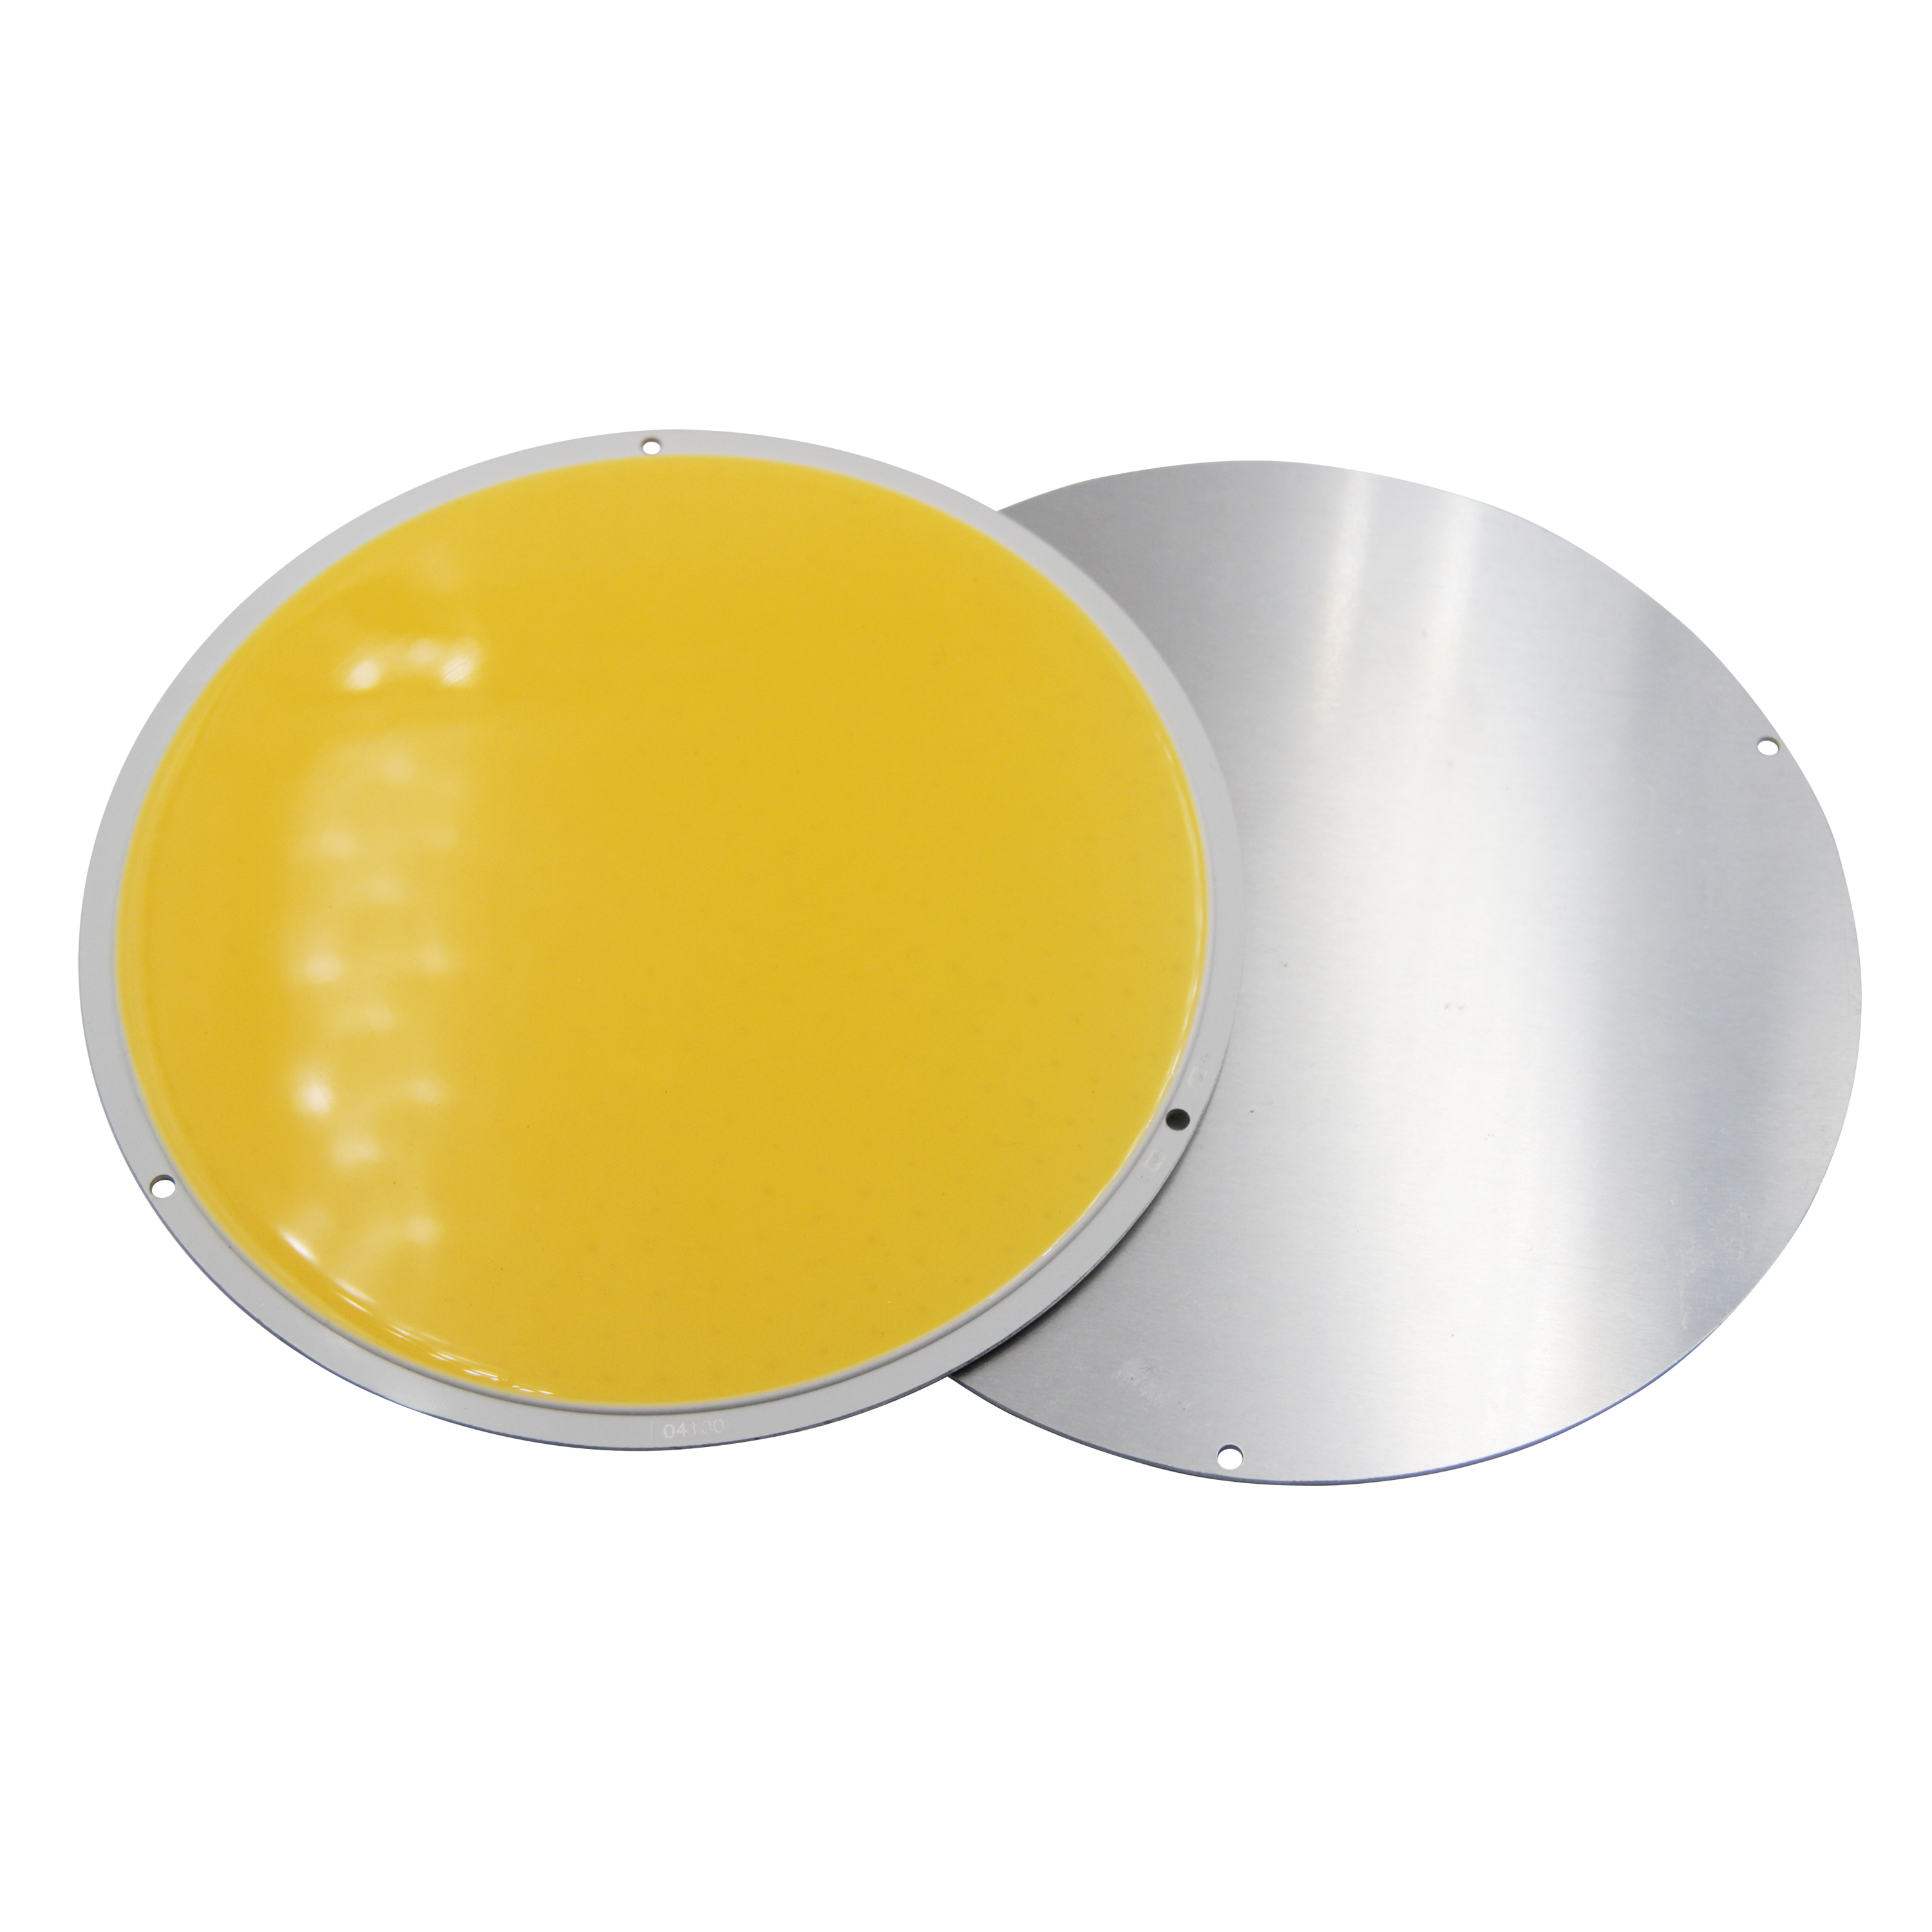 200W LED COB Module LED COB Round Panel DC 12V 160mm PCB 150mm Emitting Area Warm White